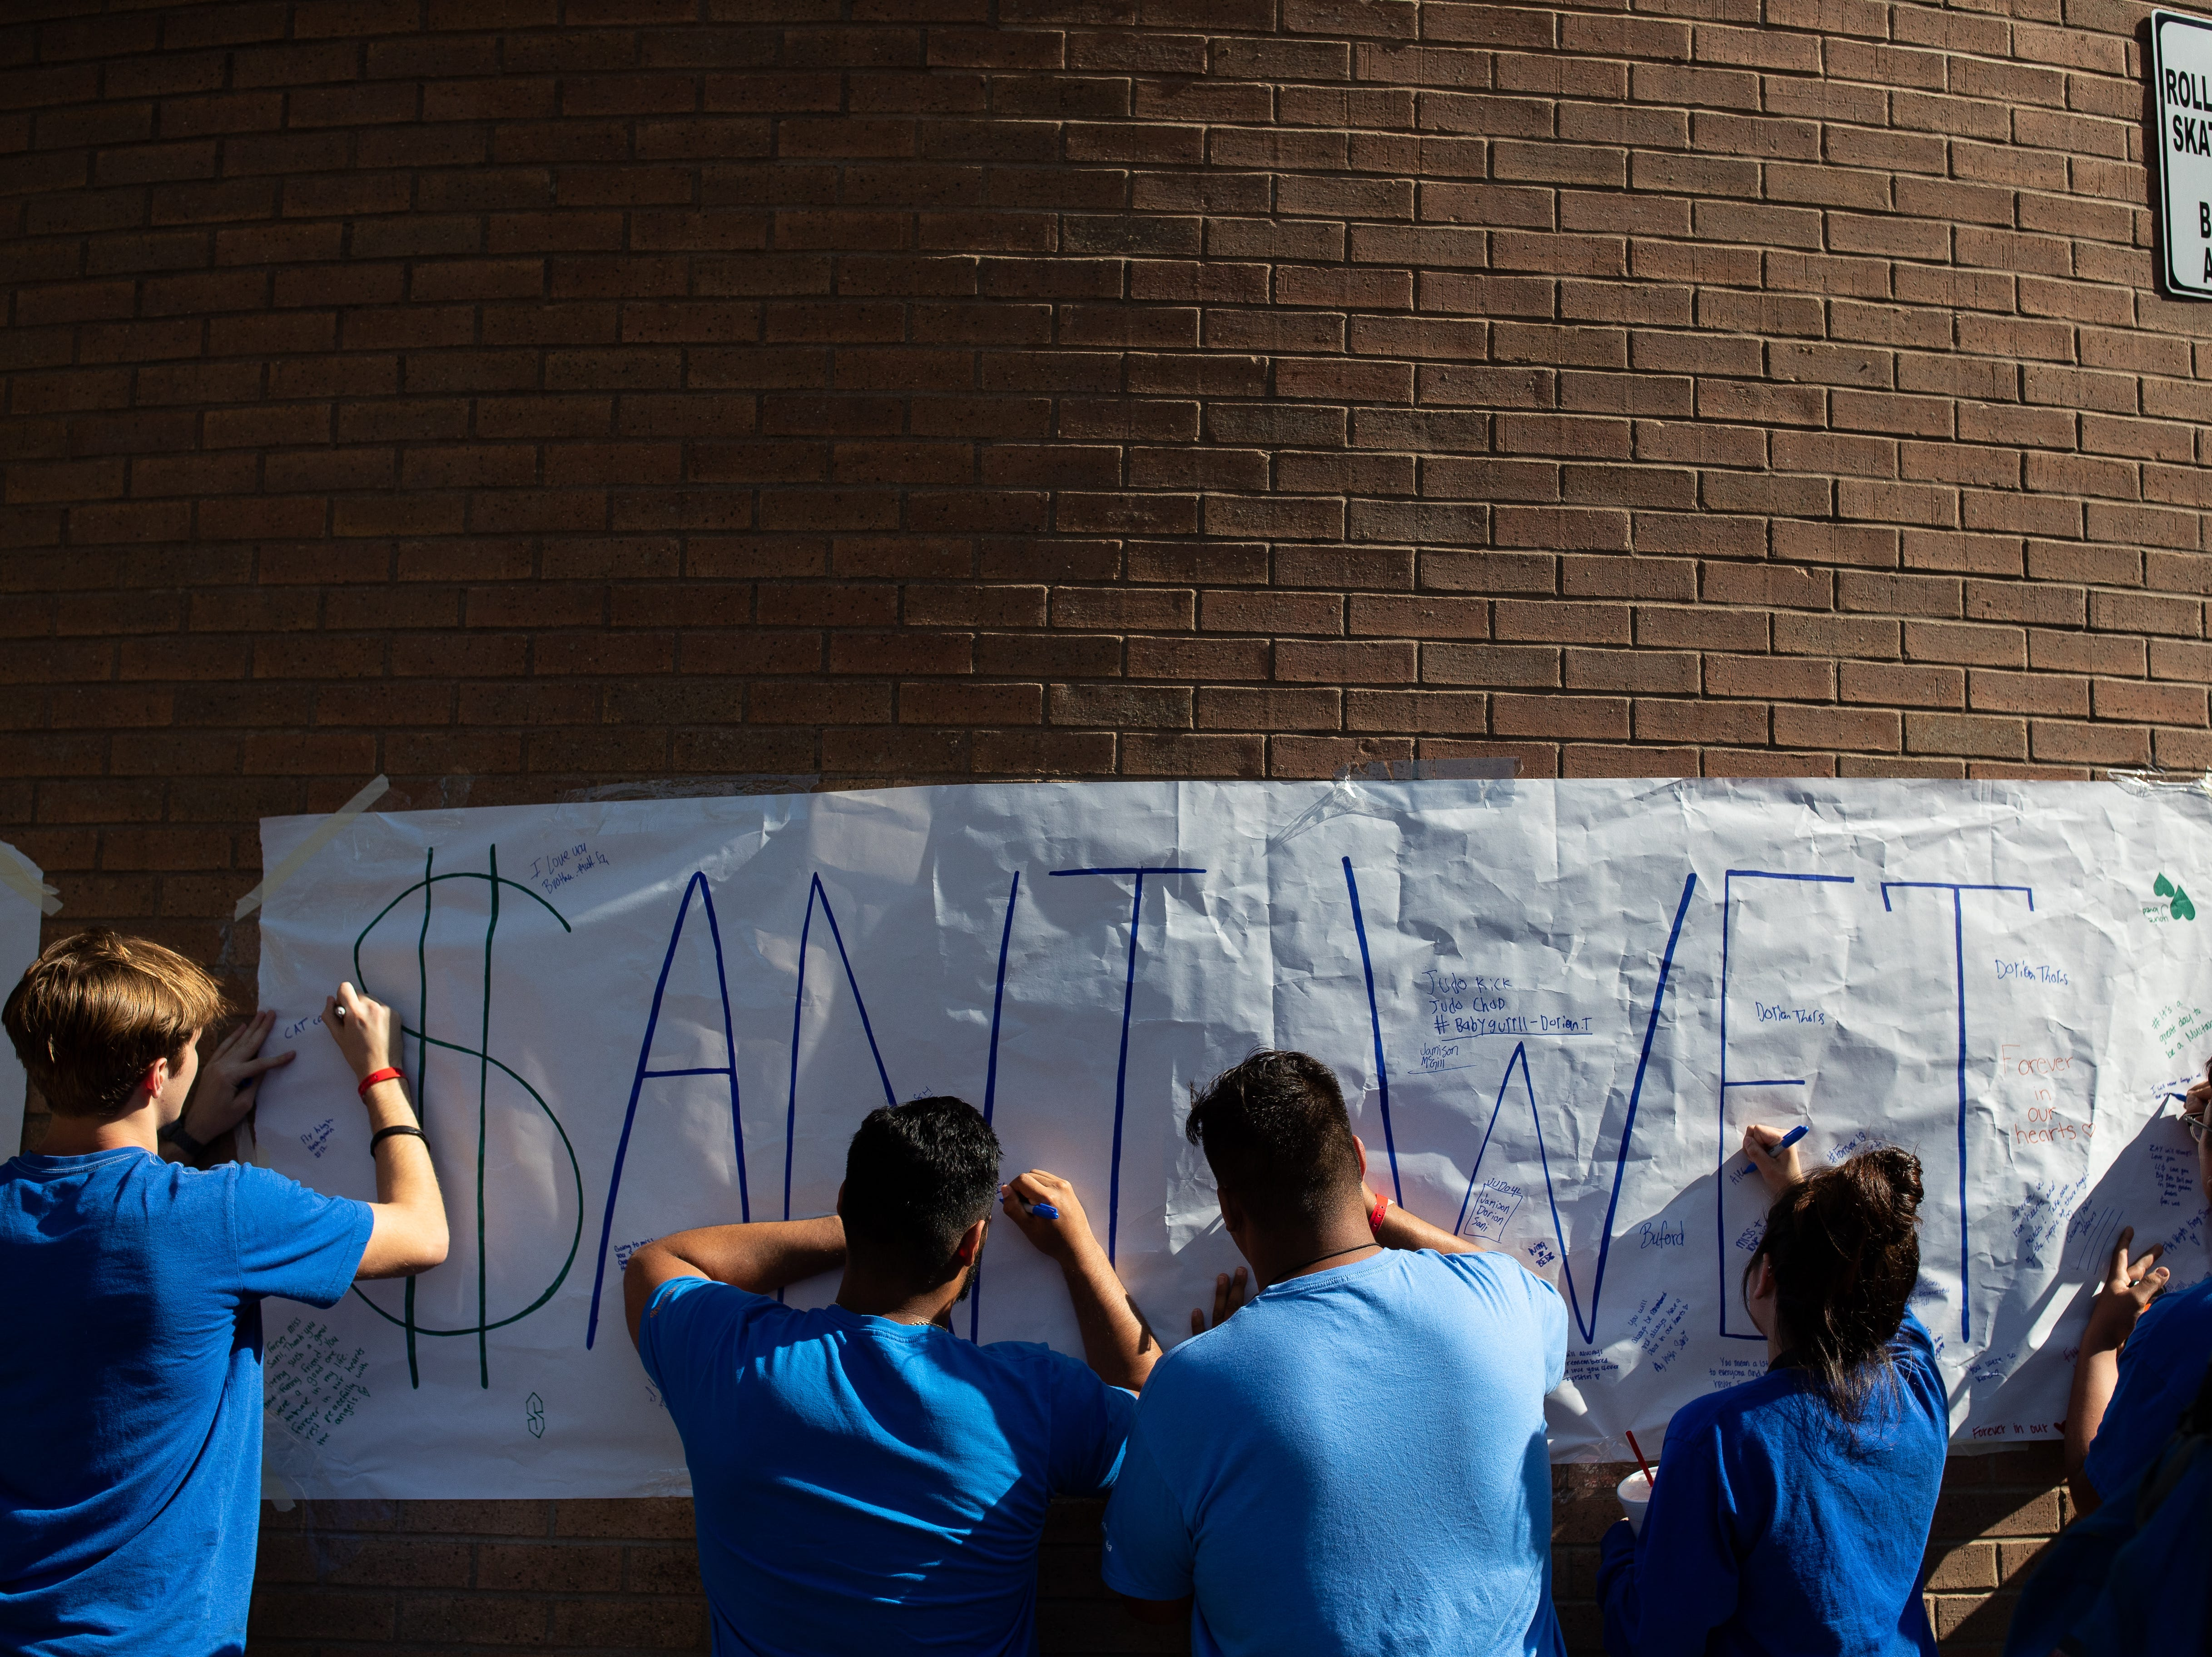 King High School students sign a banner outside the school to honor senior Je'Sani Smith on Monday, April 15, 2019. Je'Sani Smith's body was recovered Sunday afternoon near Bob Hall Pier after drowning on Whitecap Beach last week.